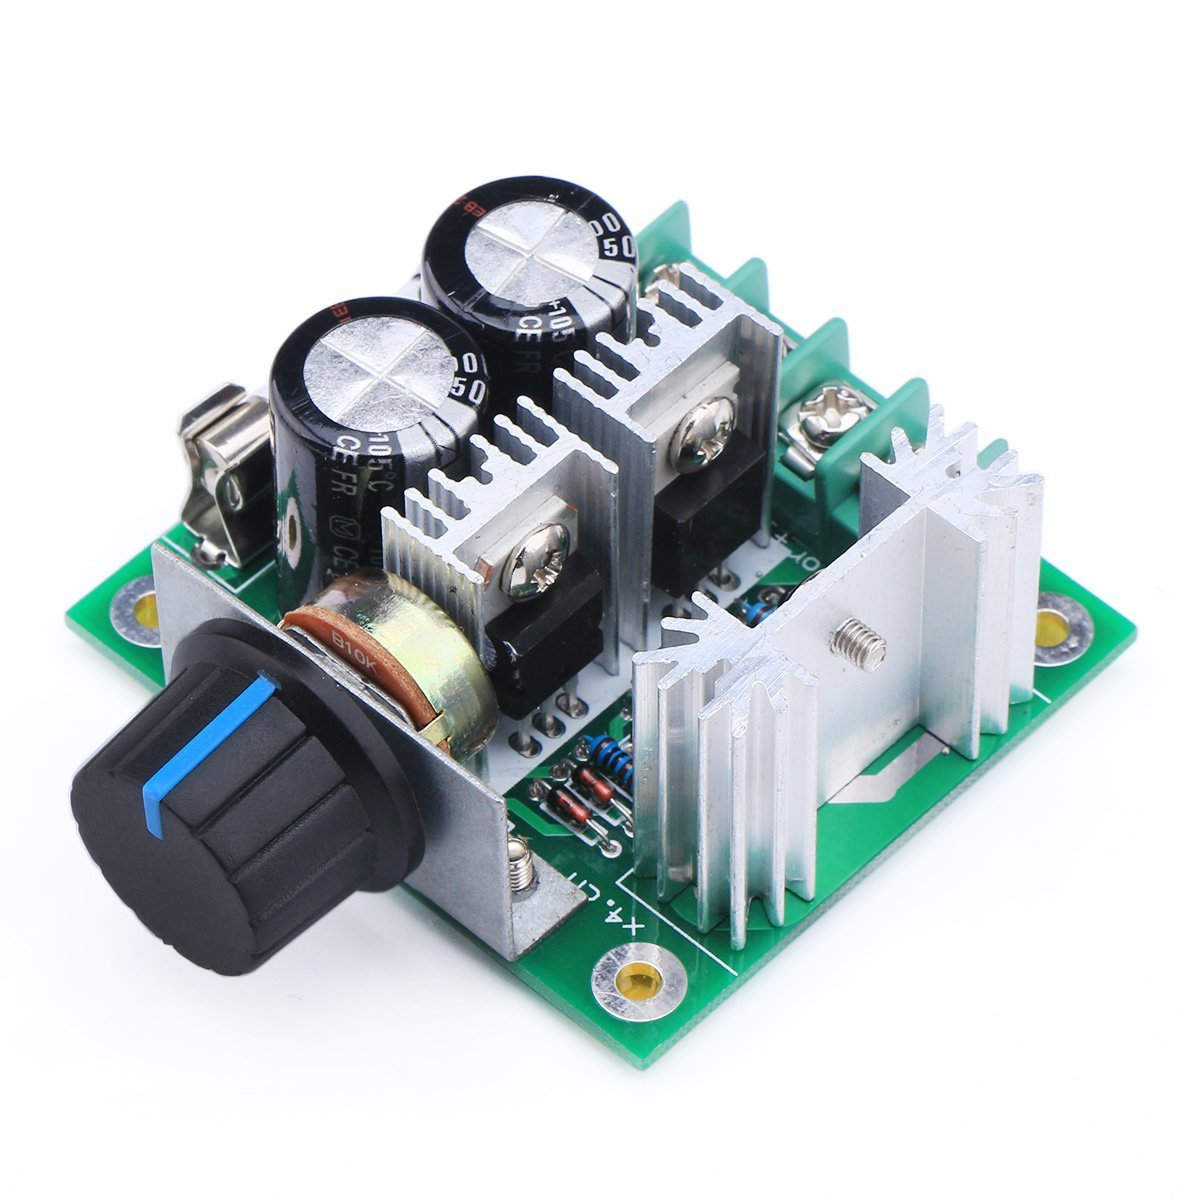 Cheap Dc Fan Motors 12v Find Deals On Line At Speed Control Motor Low Side Pwm Get Quotations Drok 13khz Controller 40v 10a Electric Pump